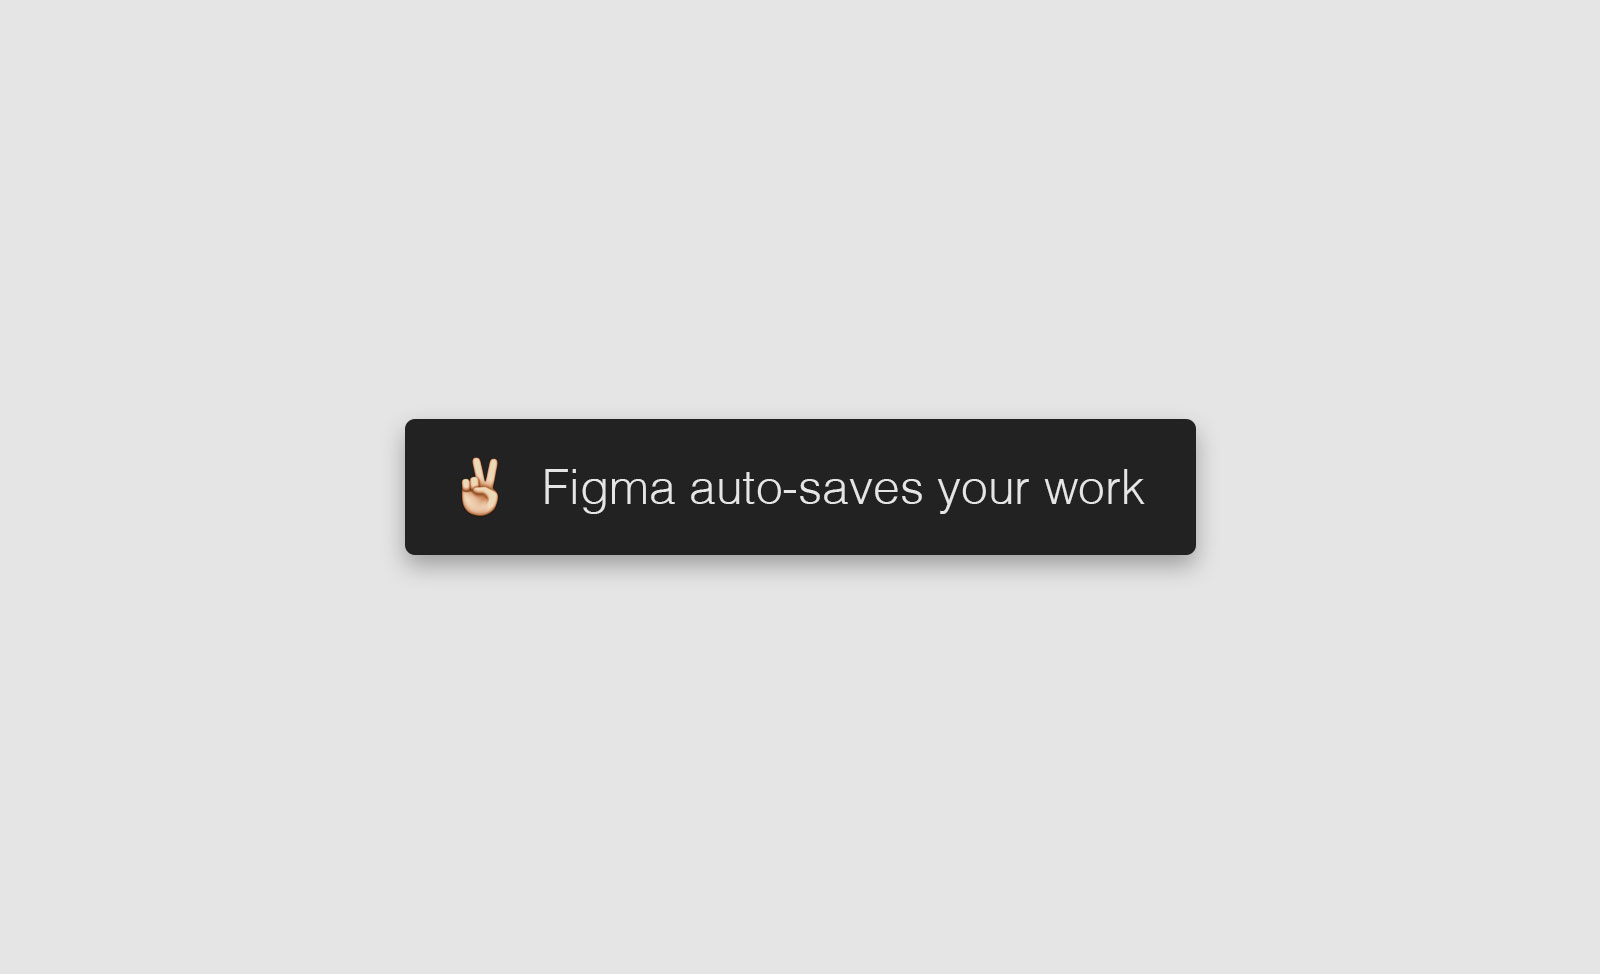 Figma auto-saves your work